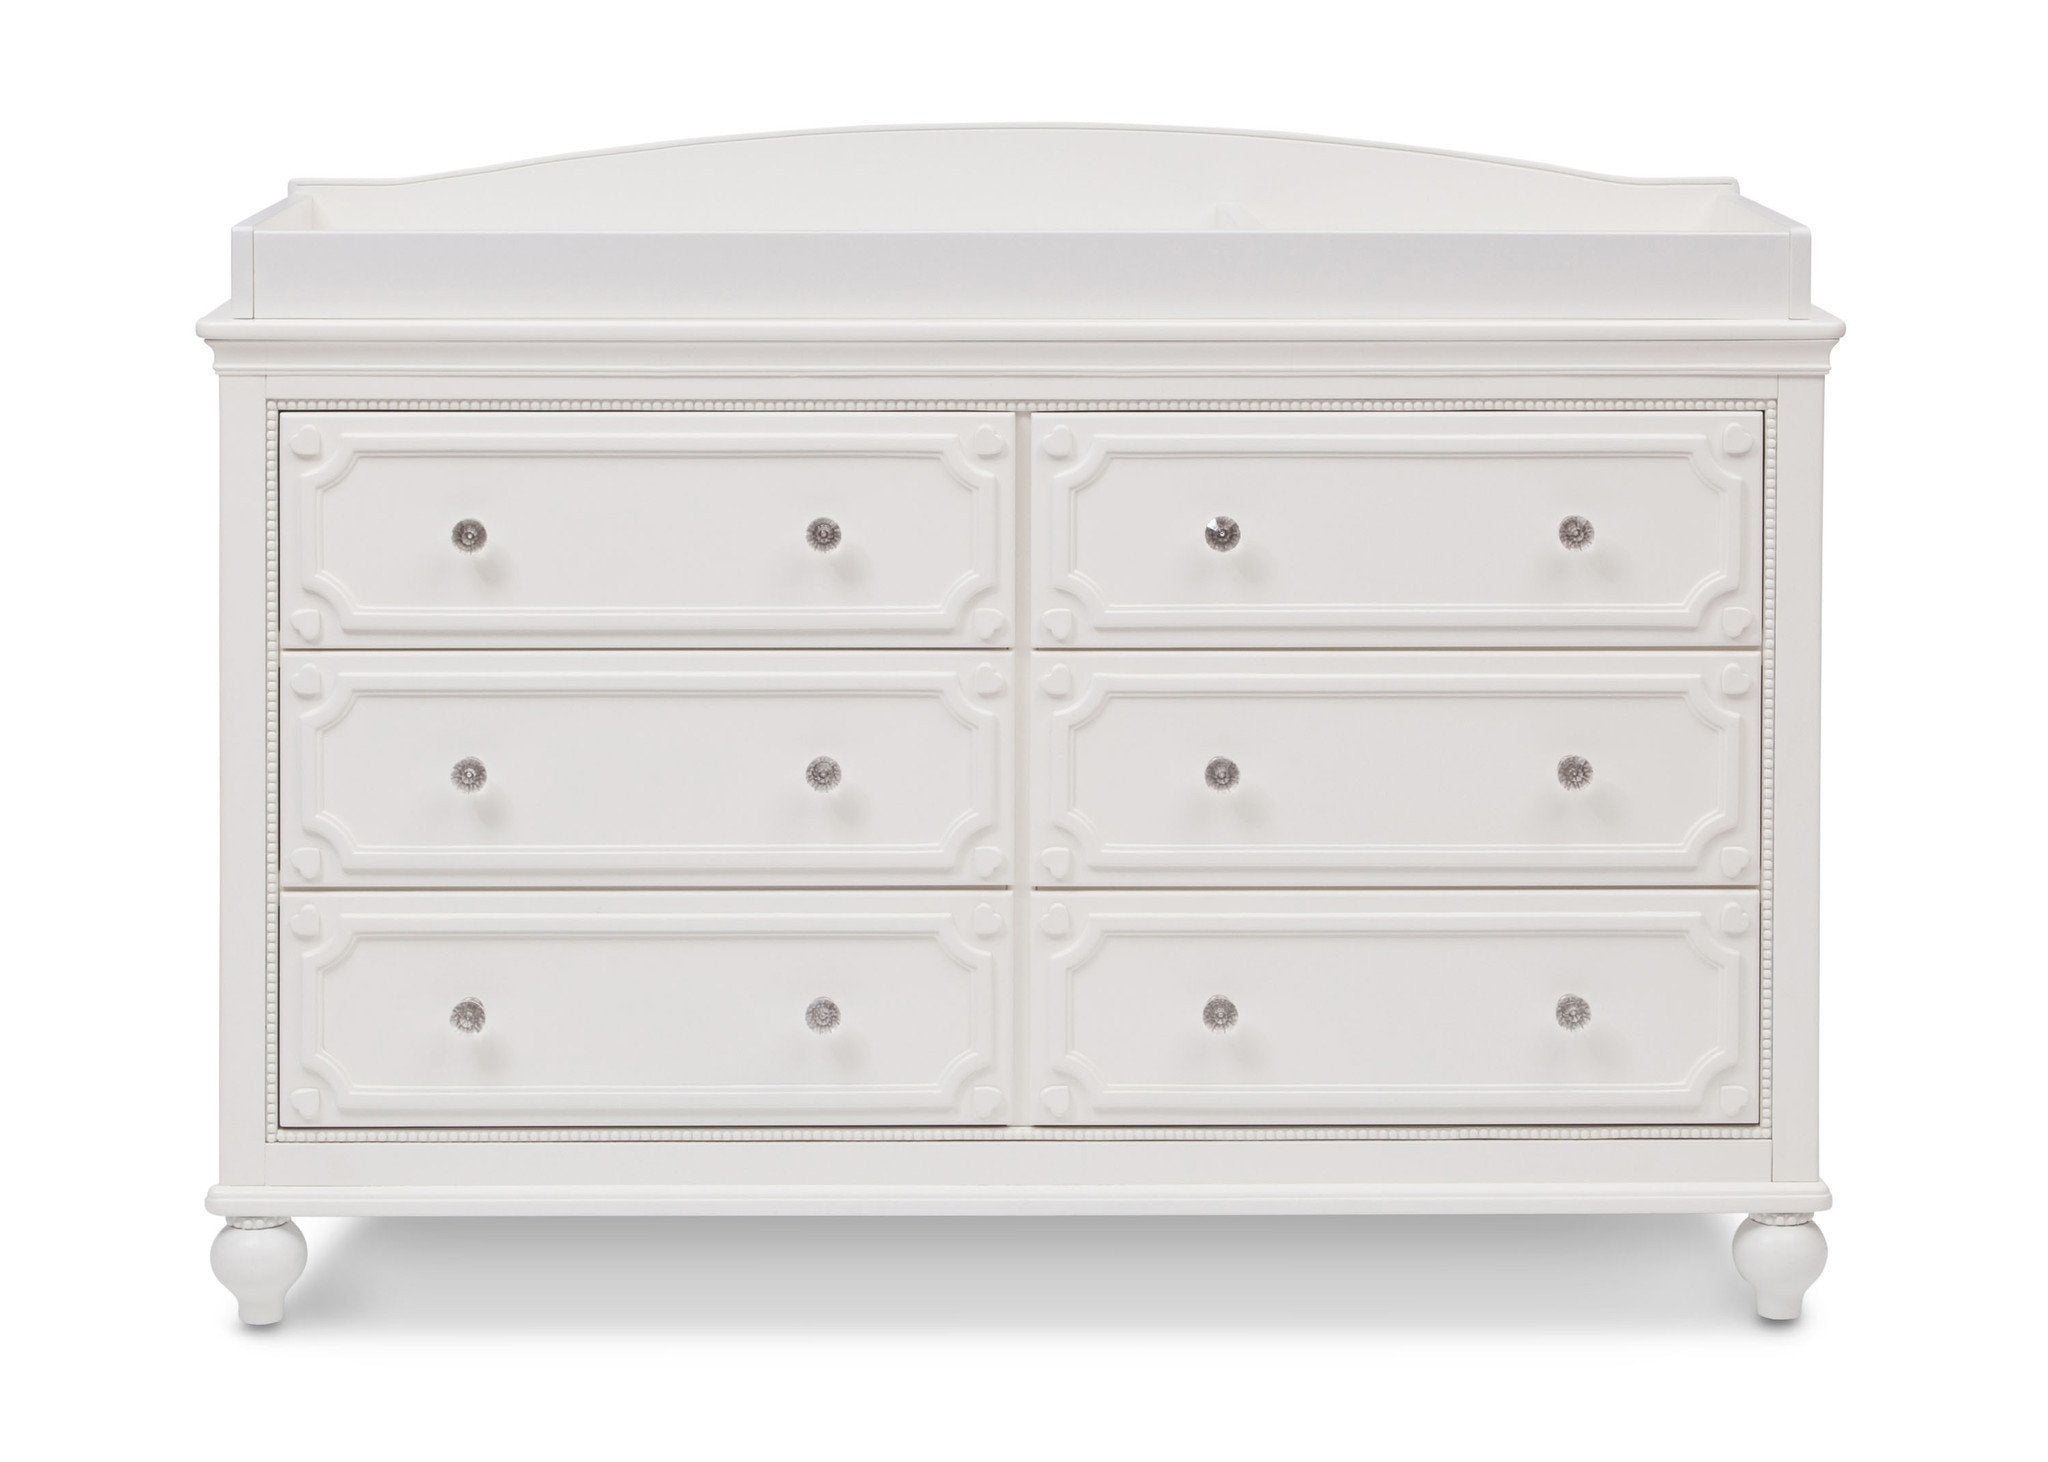 Delta Children White Ambiance (108) Princess Magical Dreams Dresser Front View with Changing Top